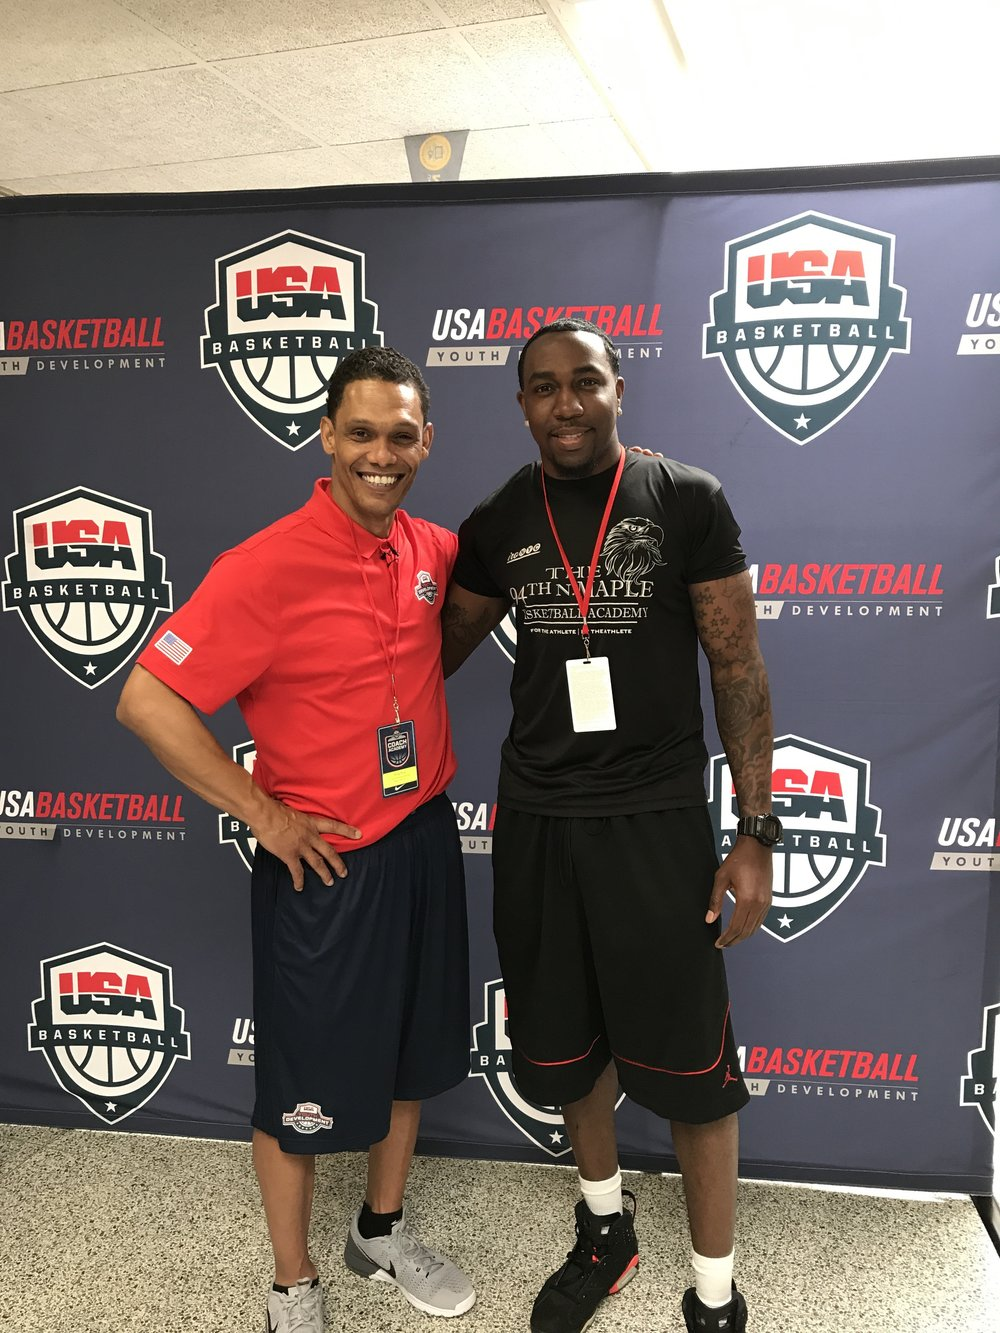 USA Basketball Certified